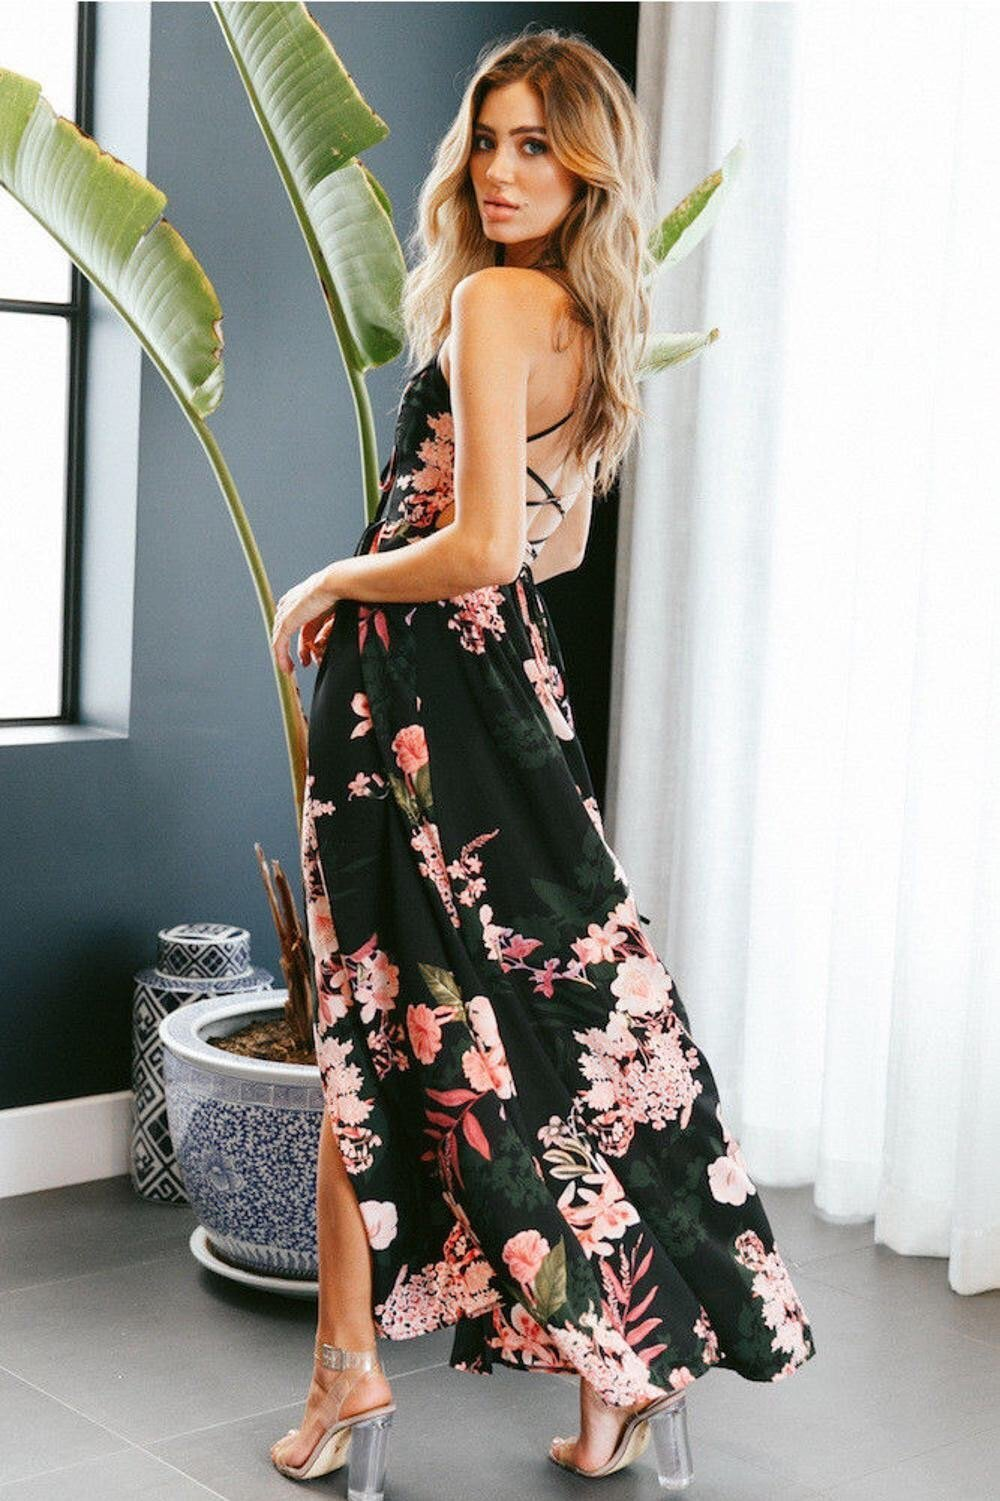 Stunning Floral Maxi Dress -NCFashionsbrand -floral maxi dress | floral maxi dress for wedding | casual floral maxi dress | floral maxi dress plus size